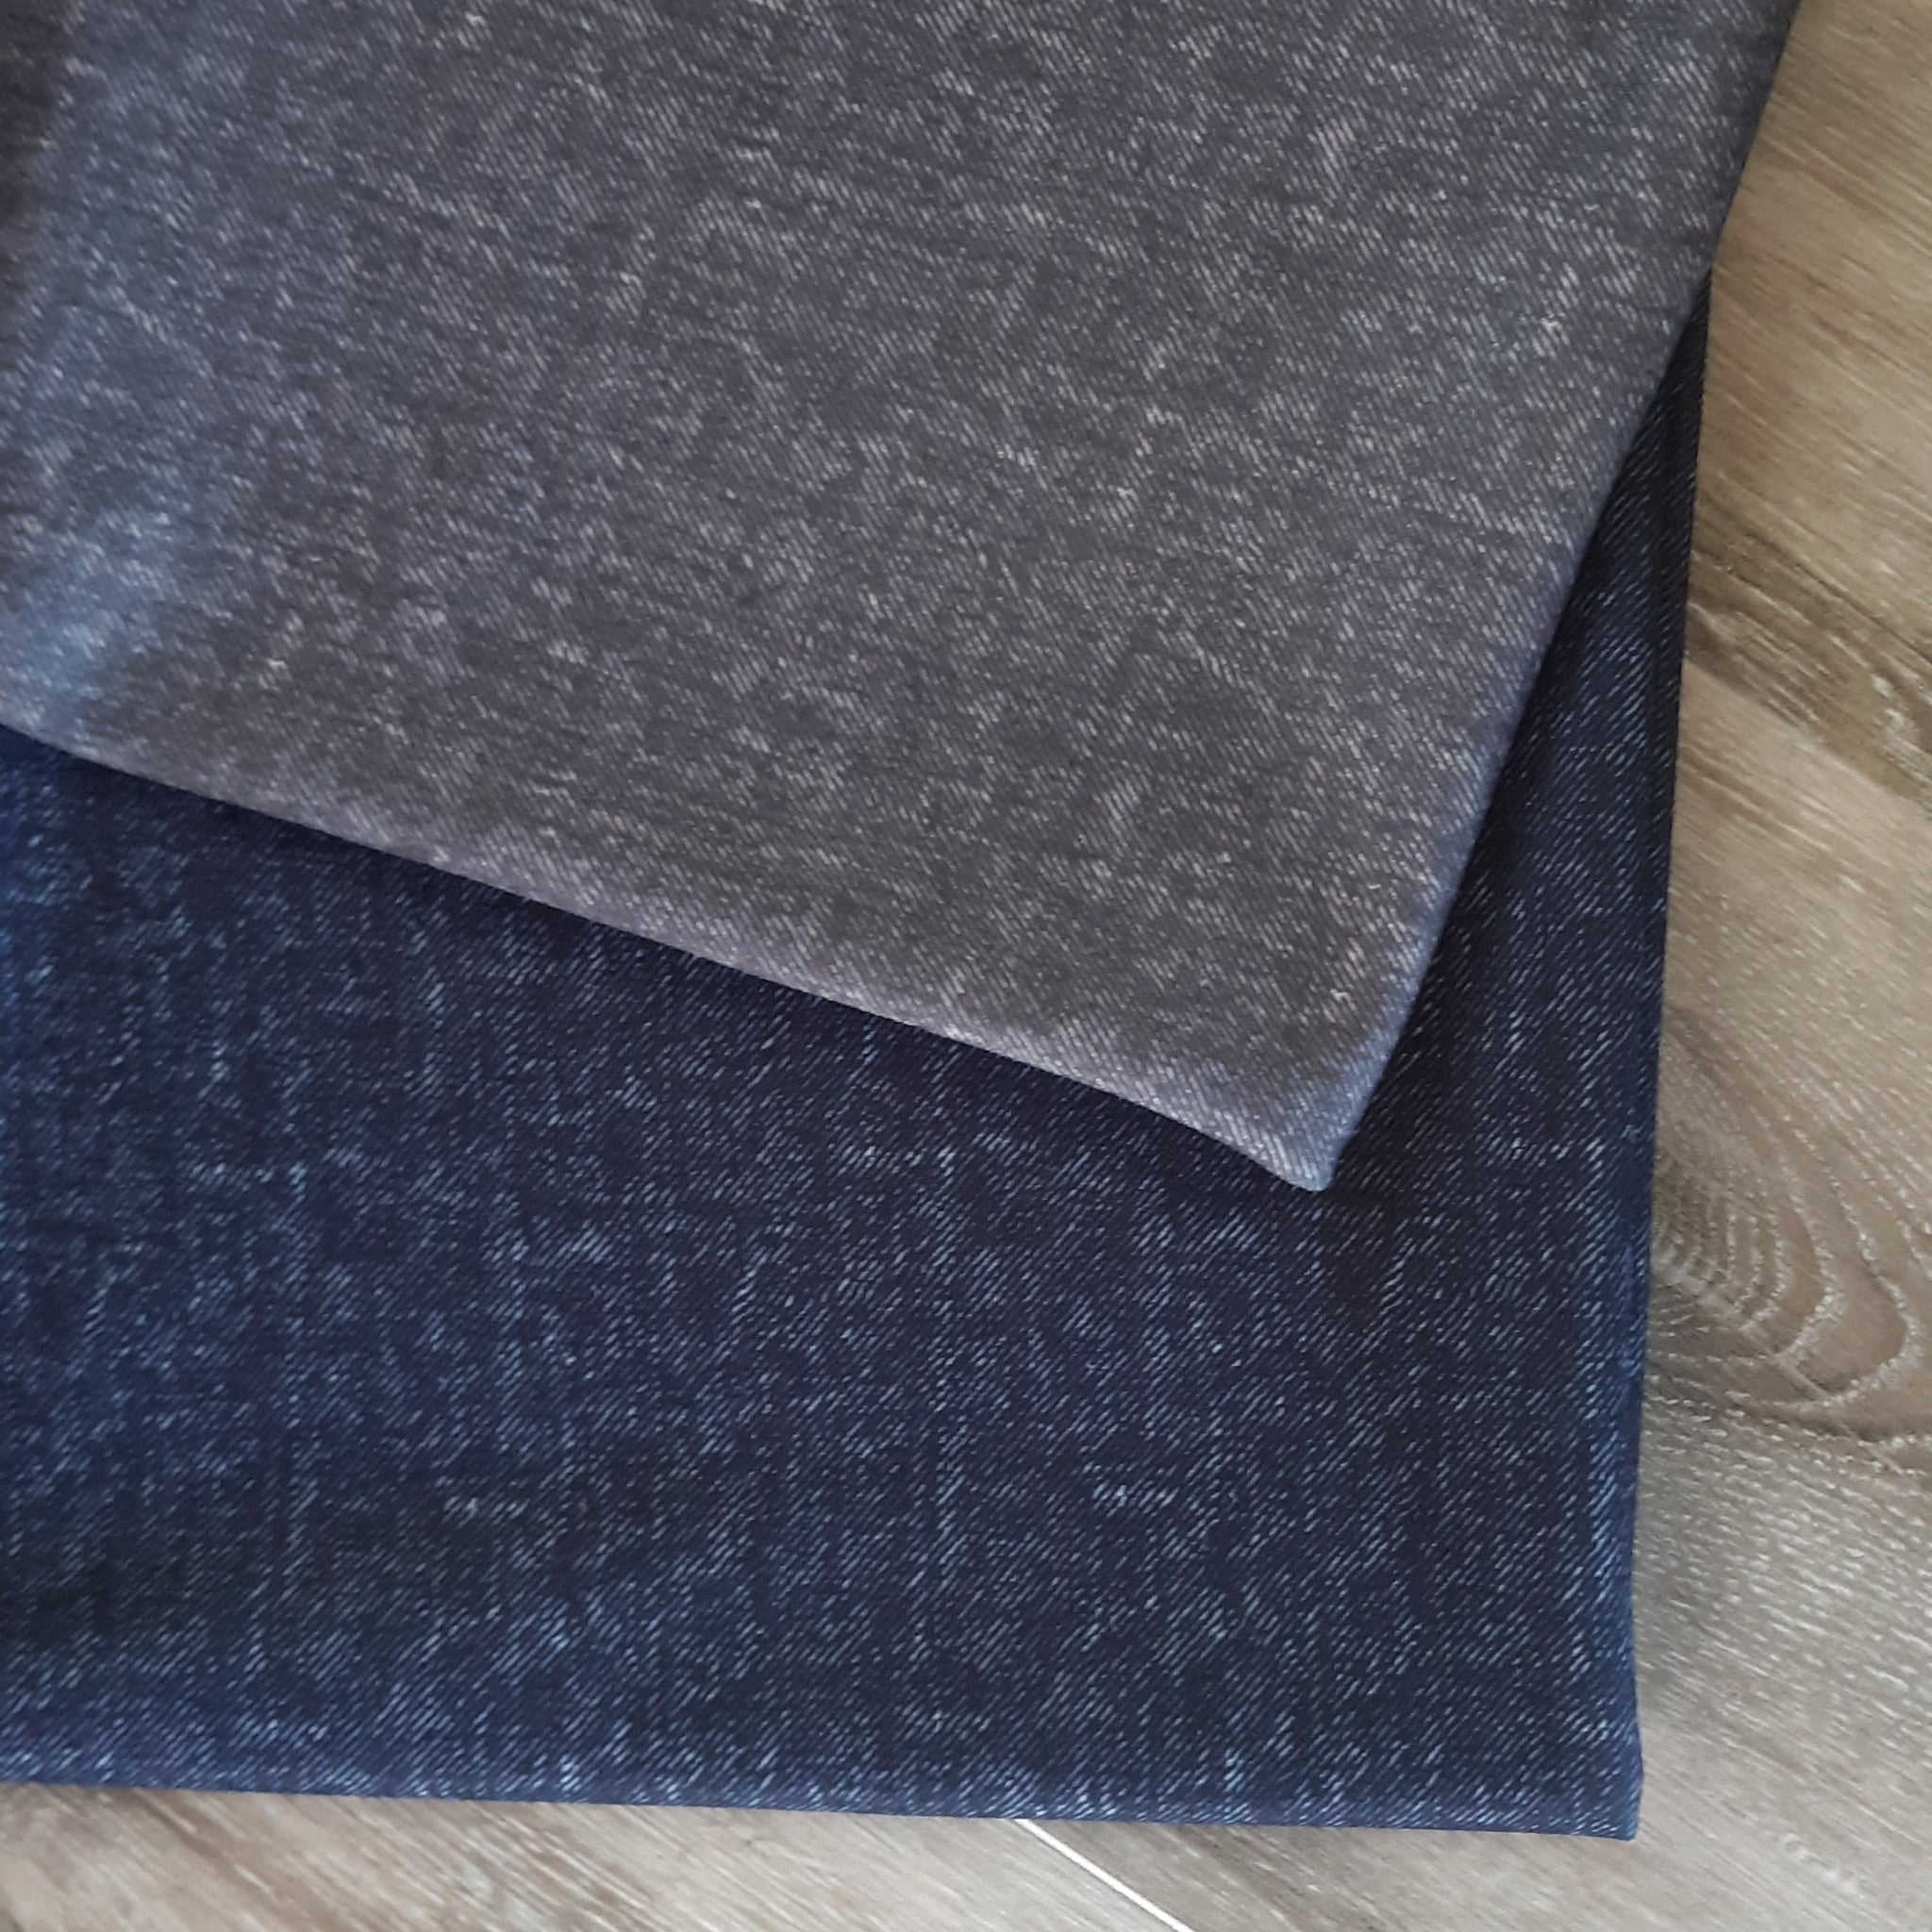 Denim Look Knit|Solids|By the Half Yard